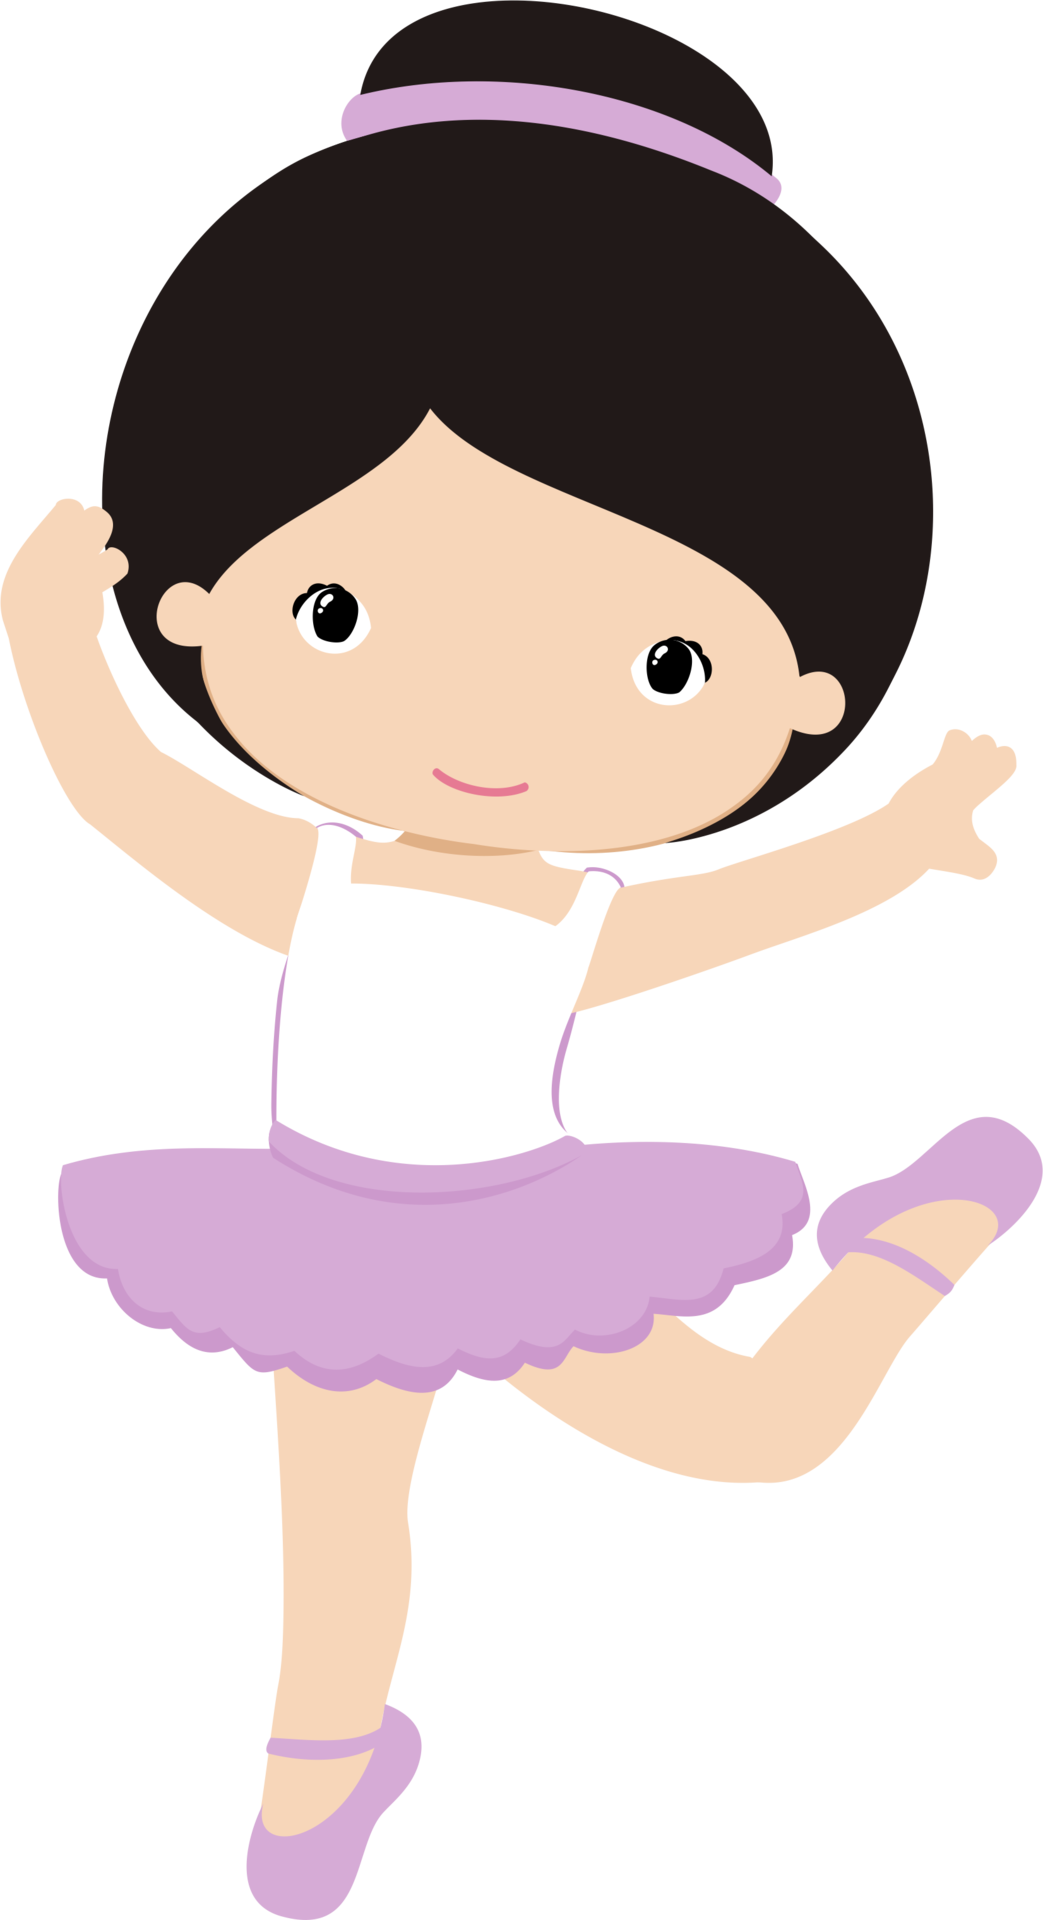 Clipart girl with book to music clipart transparent stock 4shared - exibir todas as imagens na pasta PNG | Clipart Drawings ... clipart transparent stock